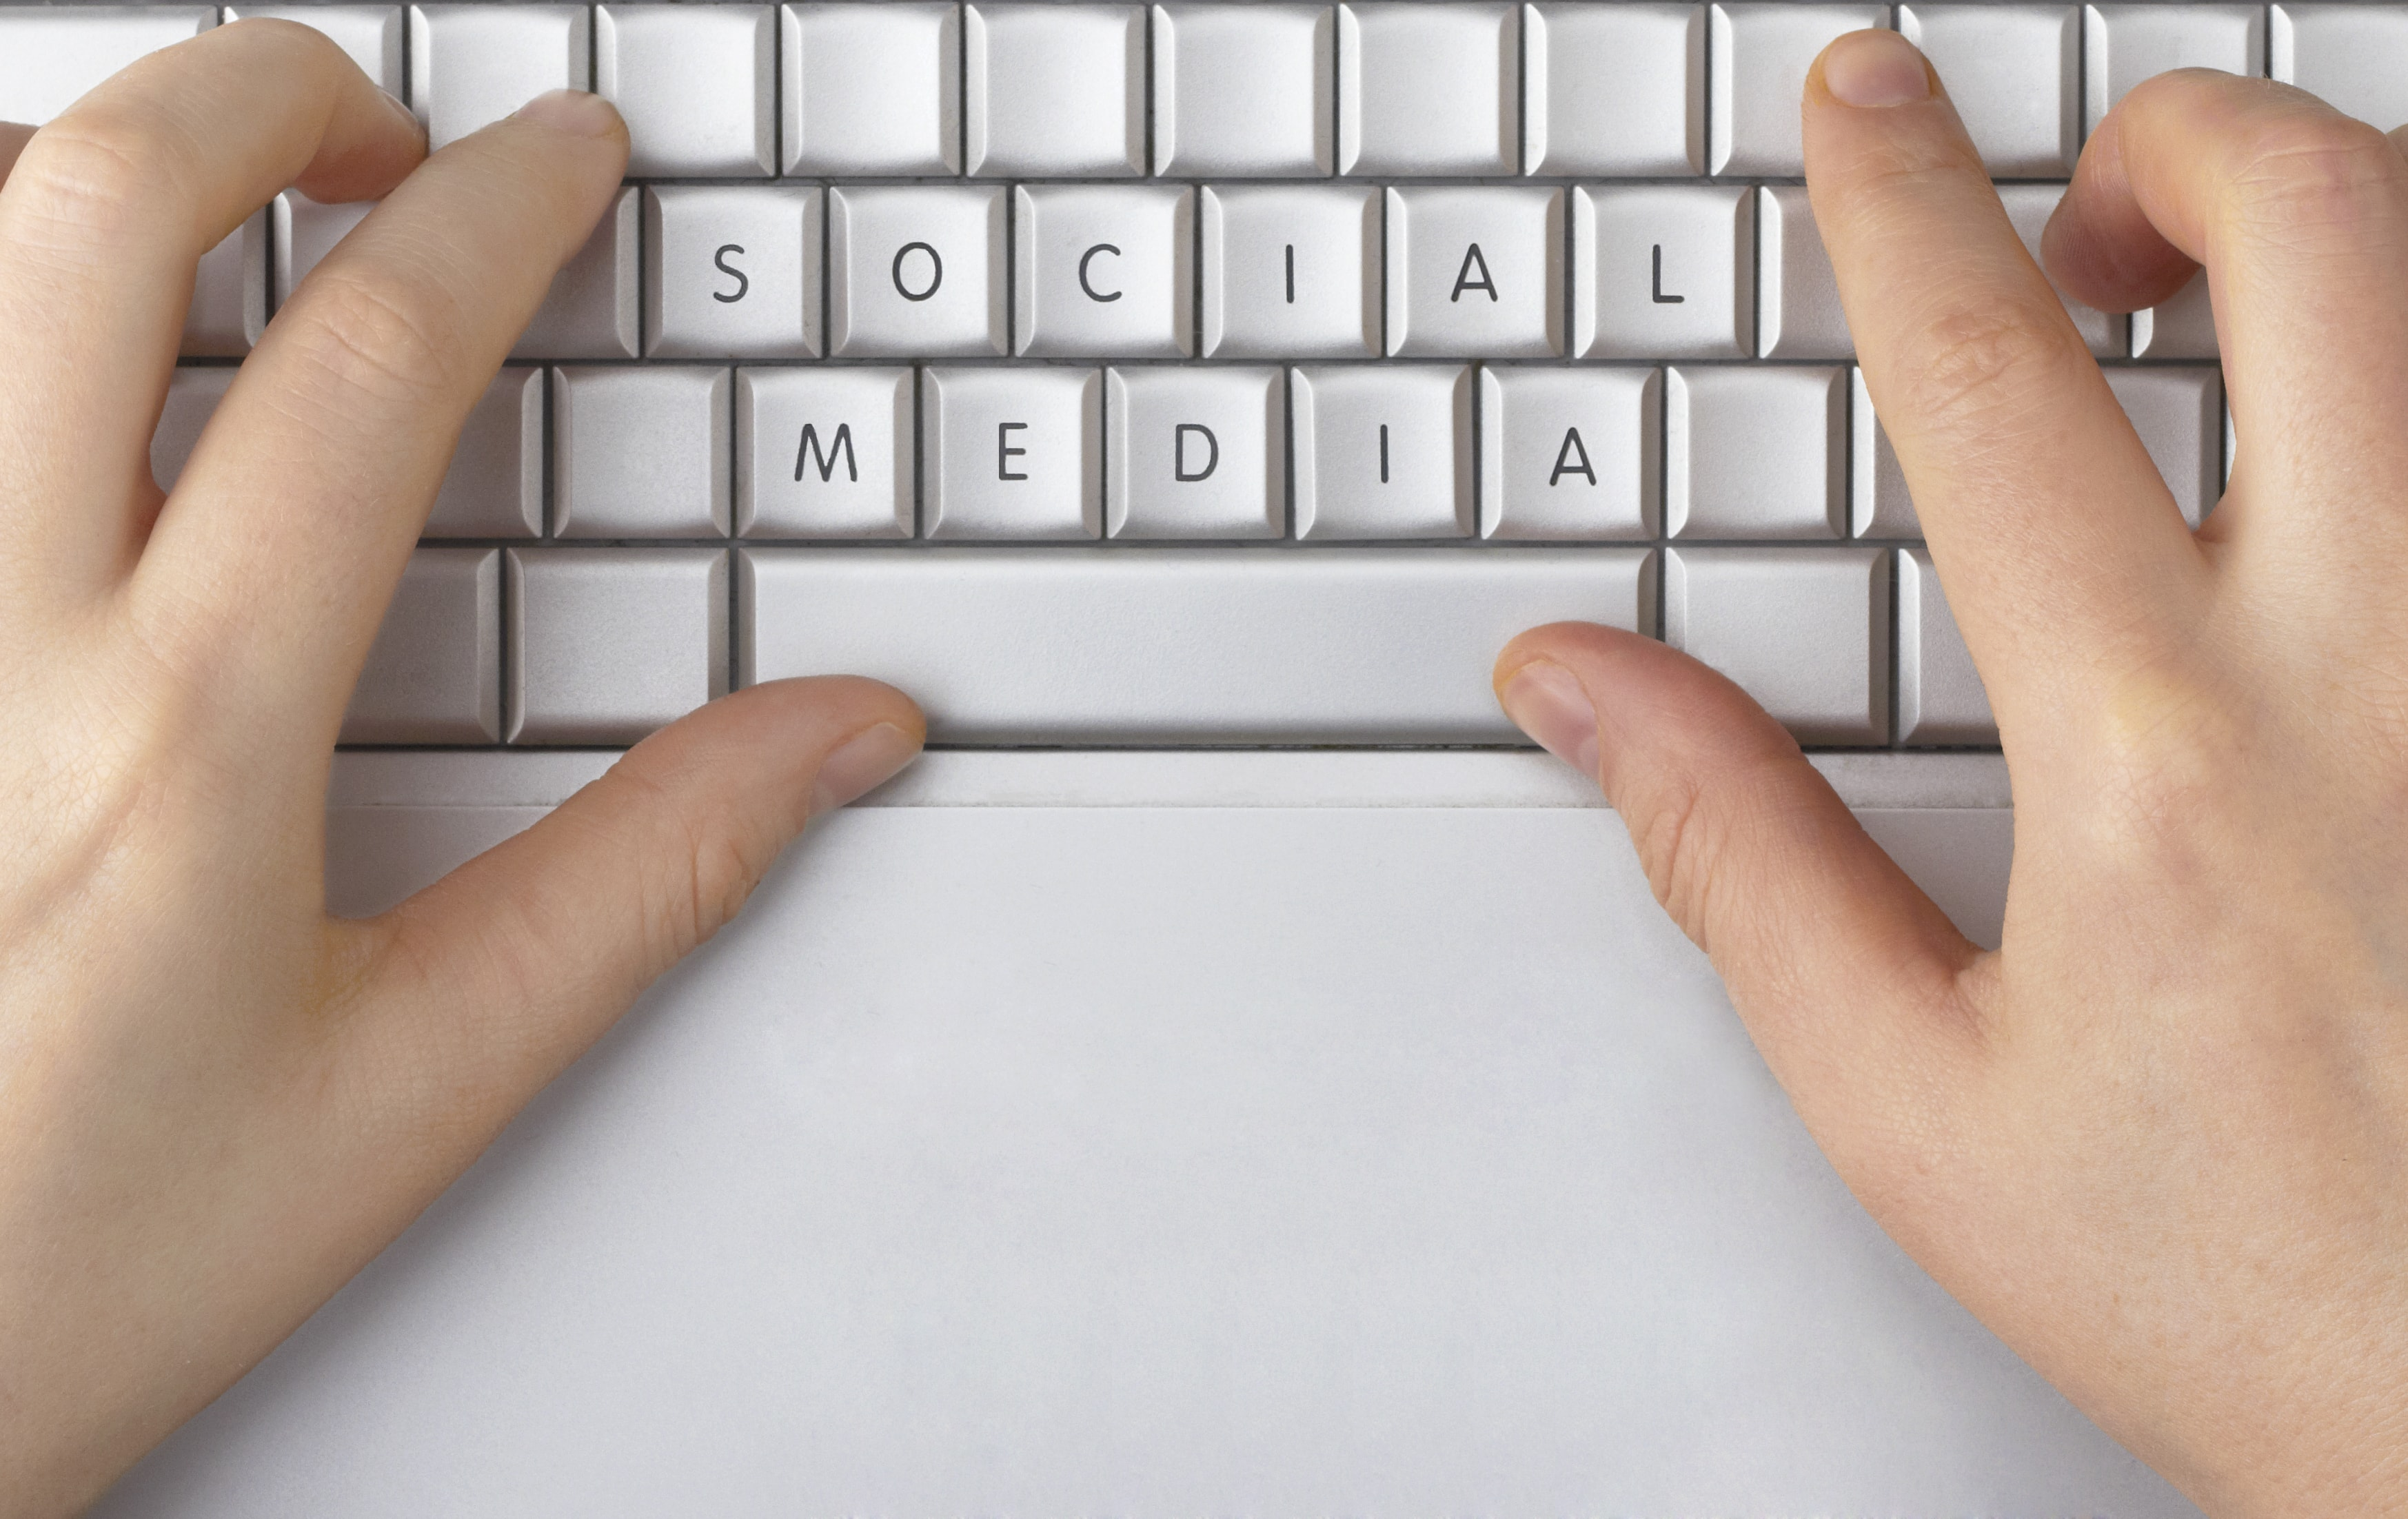 How to Select a B2B Social Media Management Tool